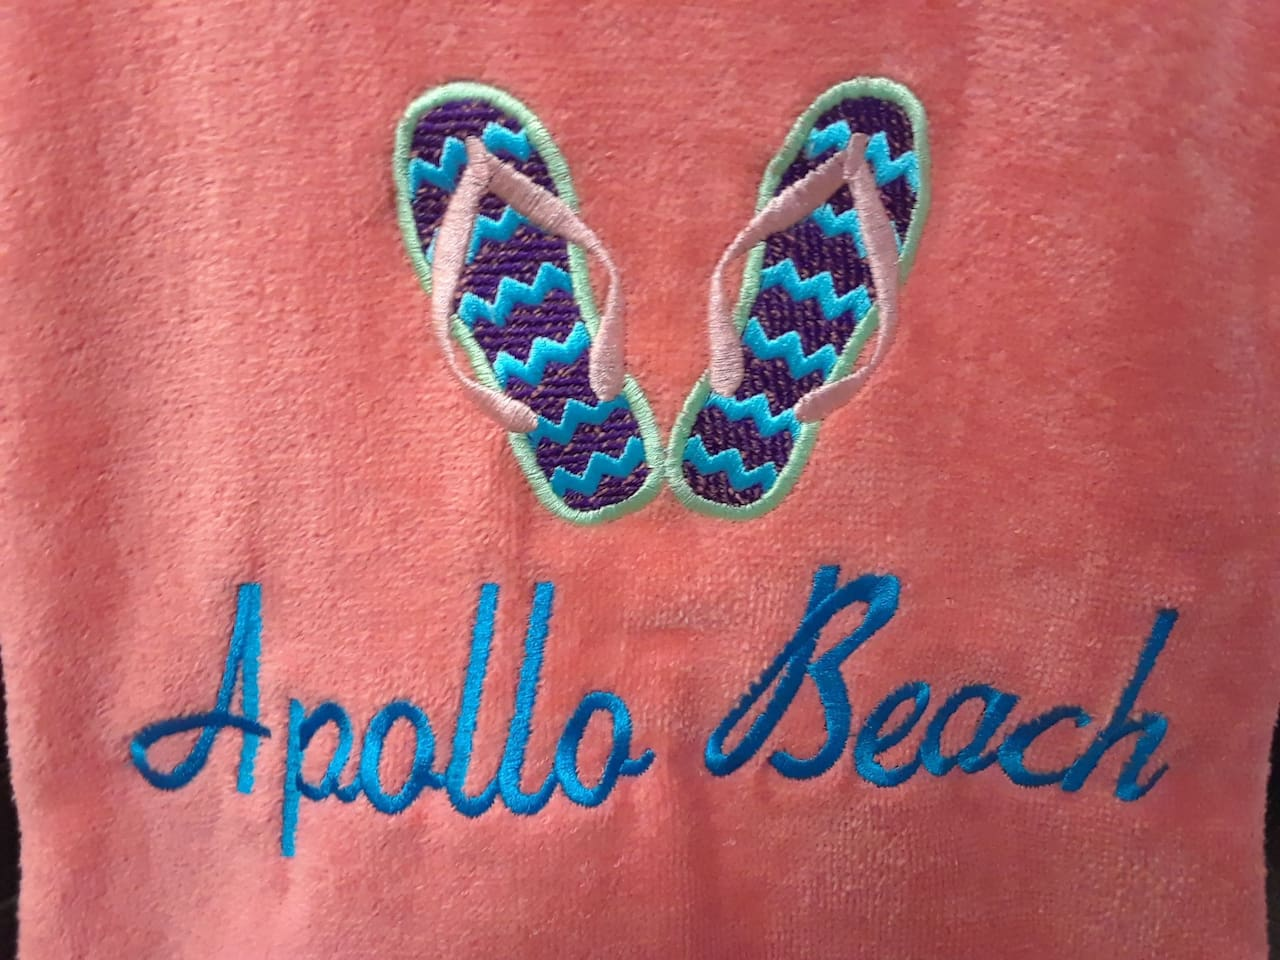 Welcome to Apollo Beach, Florida